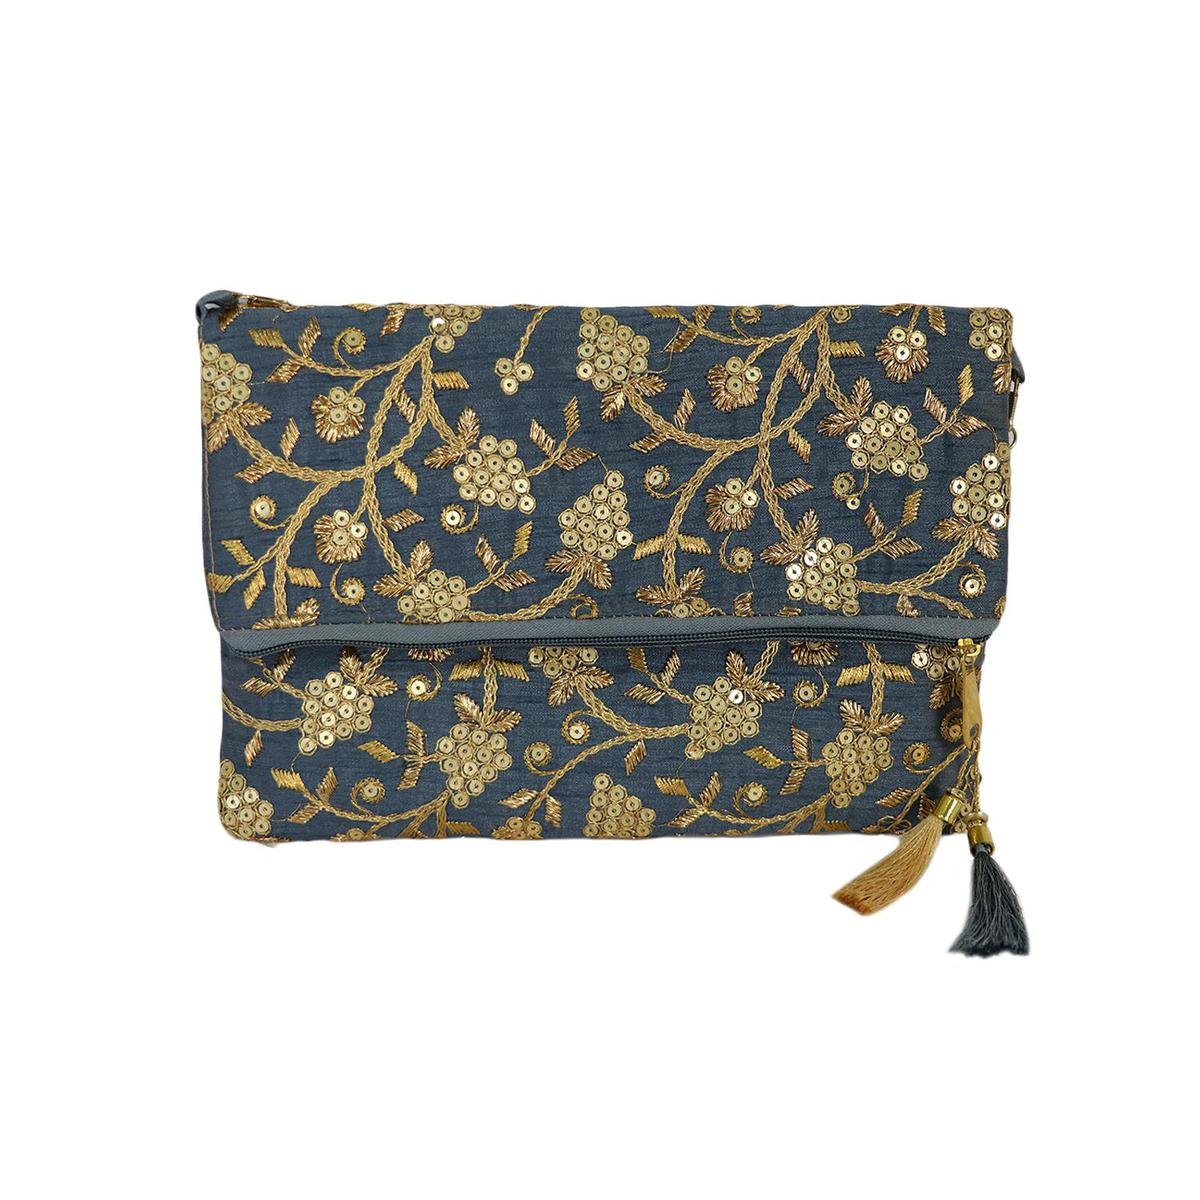 Lelys - Traditional Handcrafted Embroidery Clutch For Women/Girls